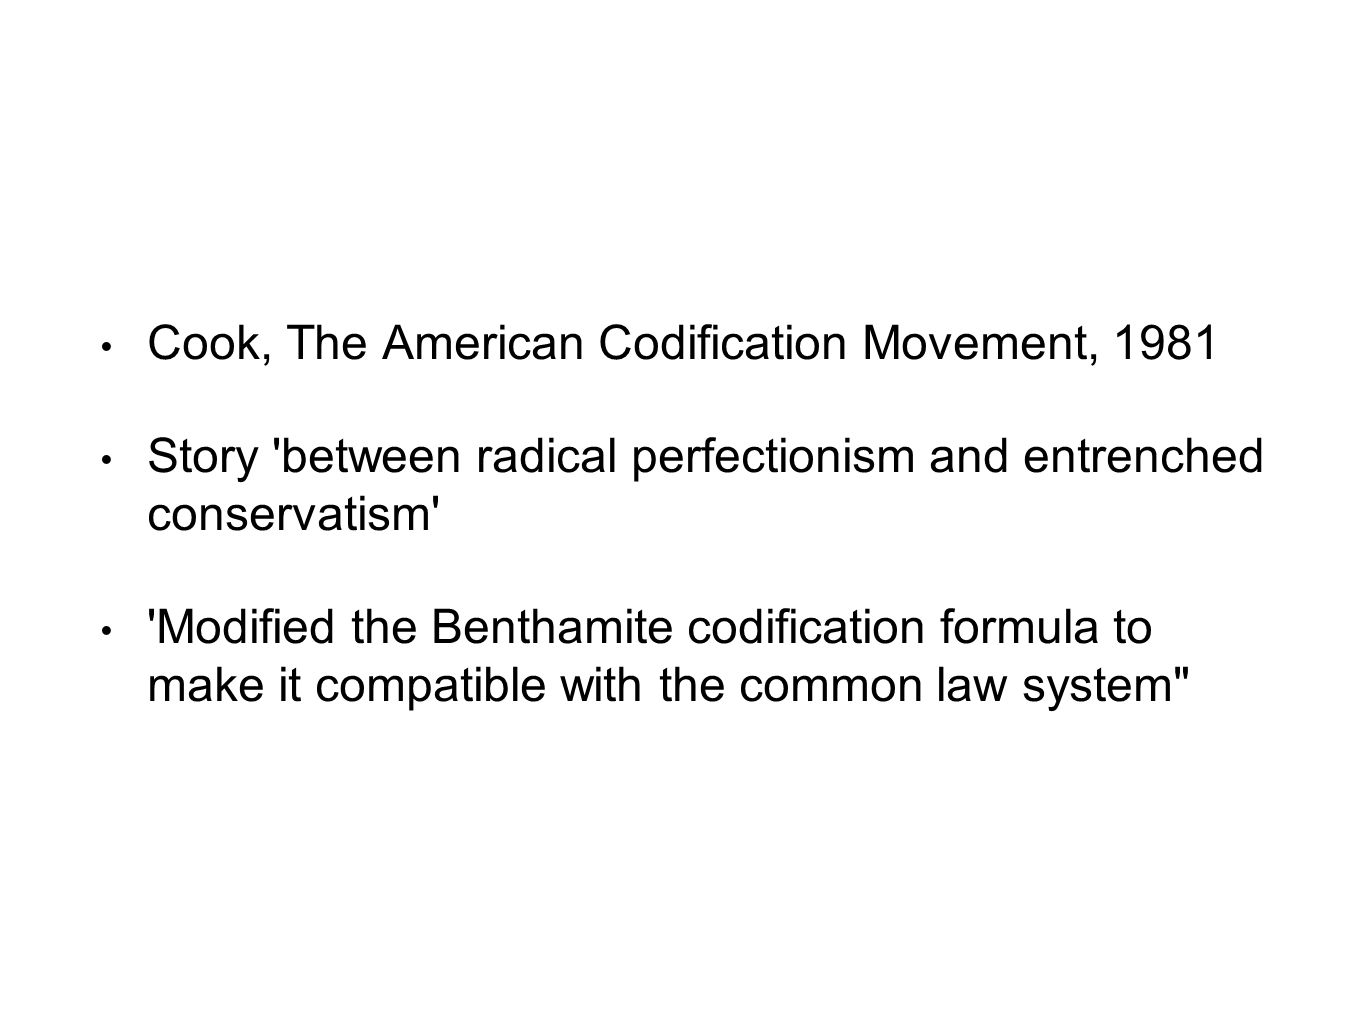 Cook, The American Codification Movement, 1981 Story 'between radical perfectionism and entrenched conservatism' 'Modified the Benthamite codification